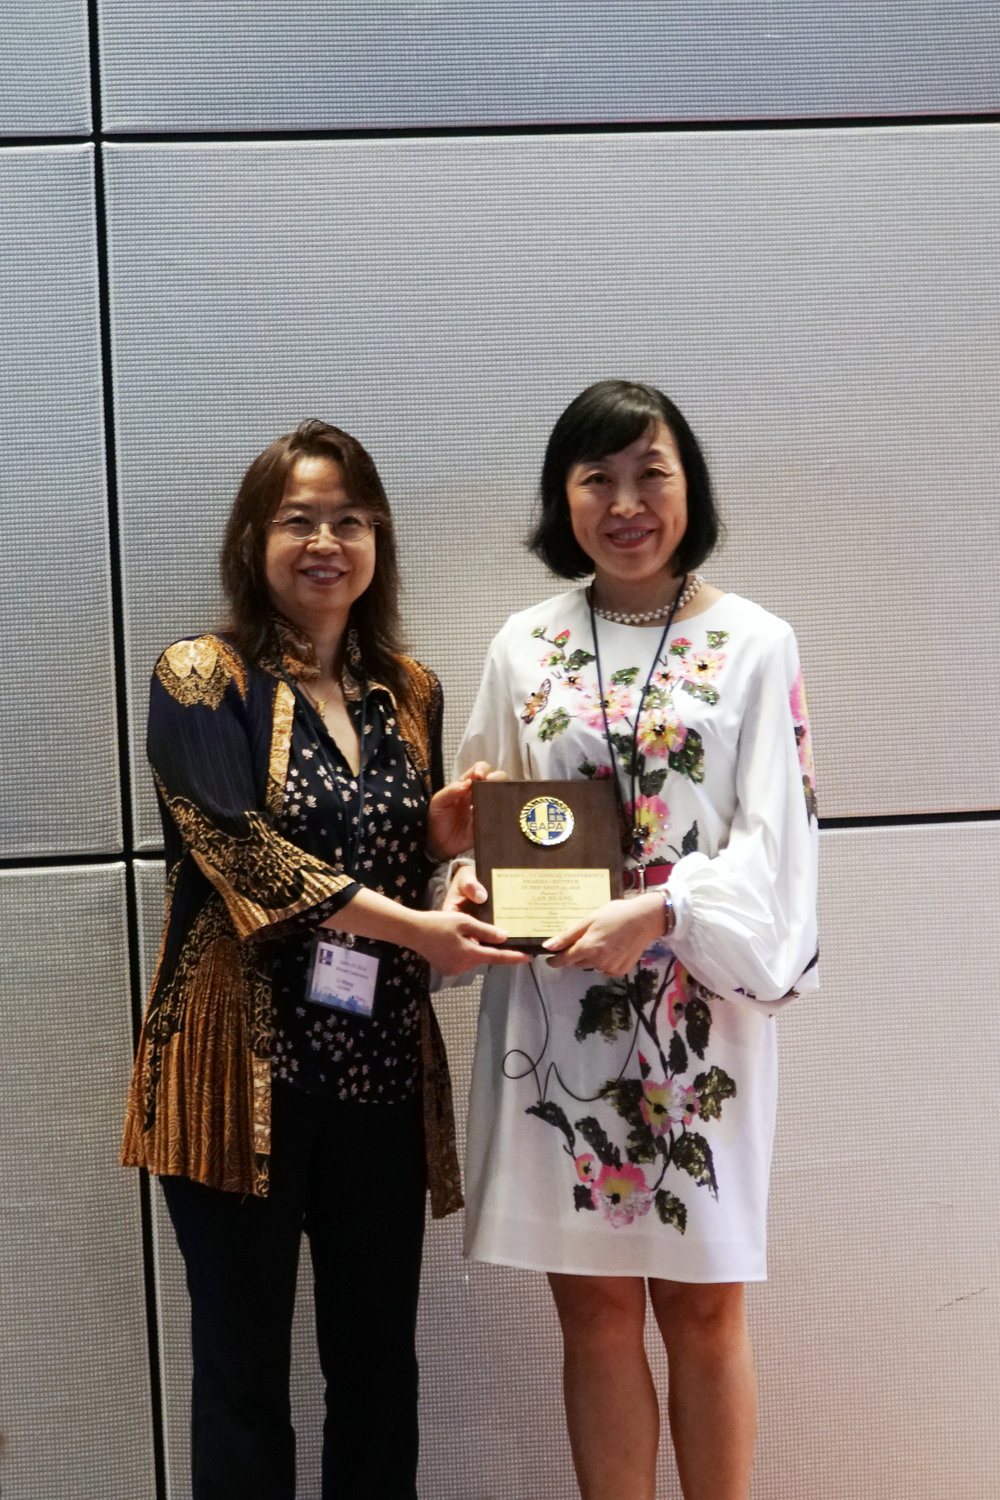 Dr. Lan Huang honored by Dr. Li Wang to receive SAPA-CT speaker award.